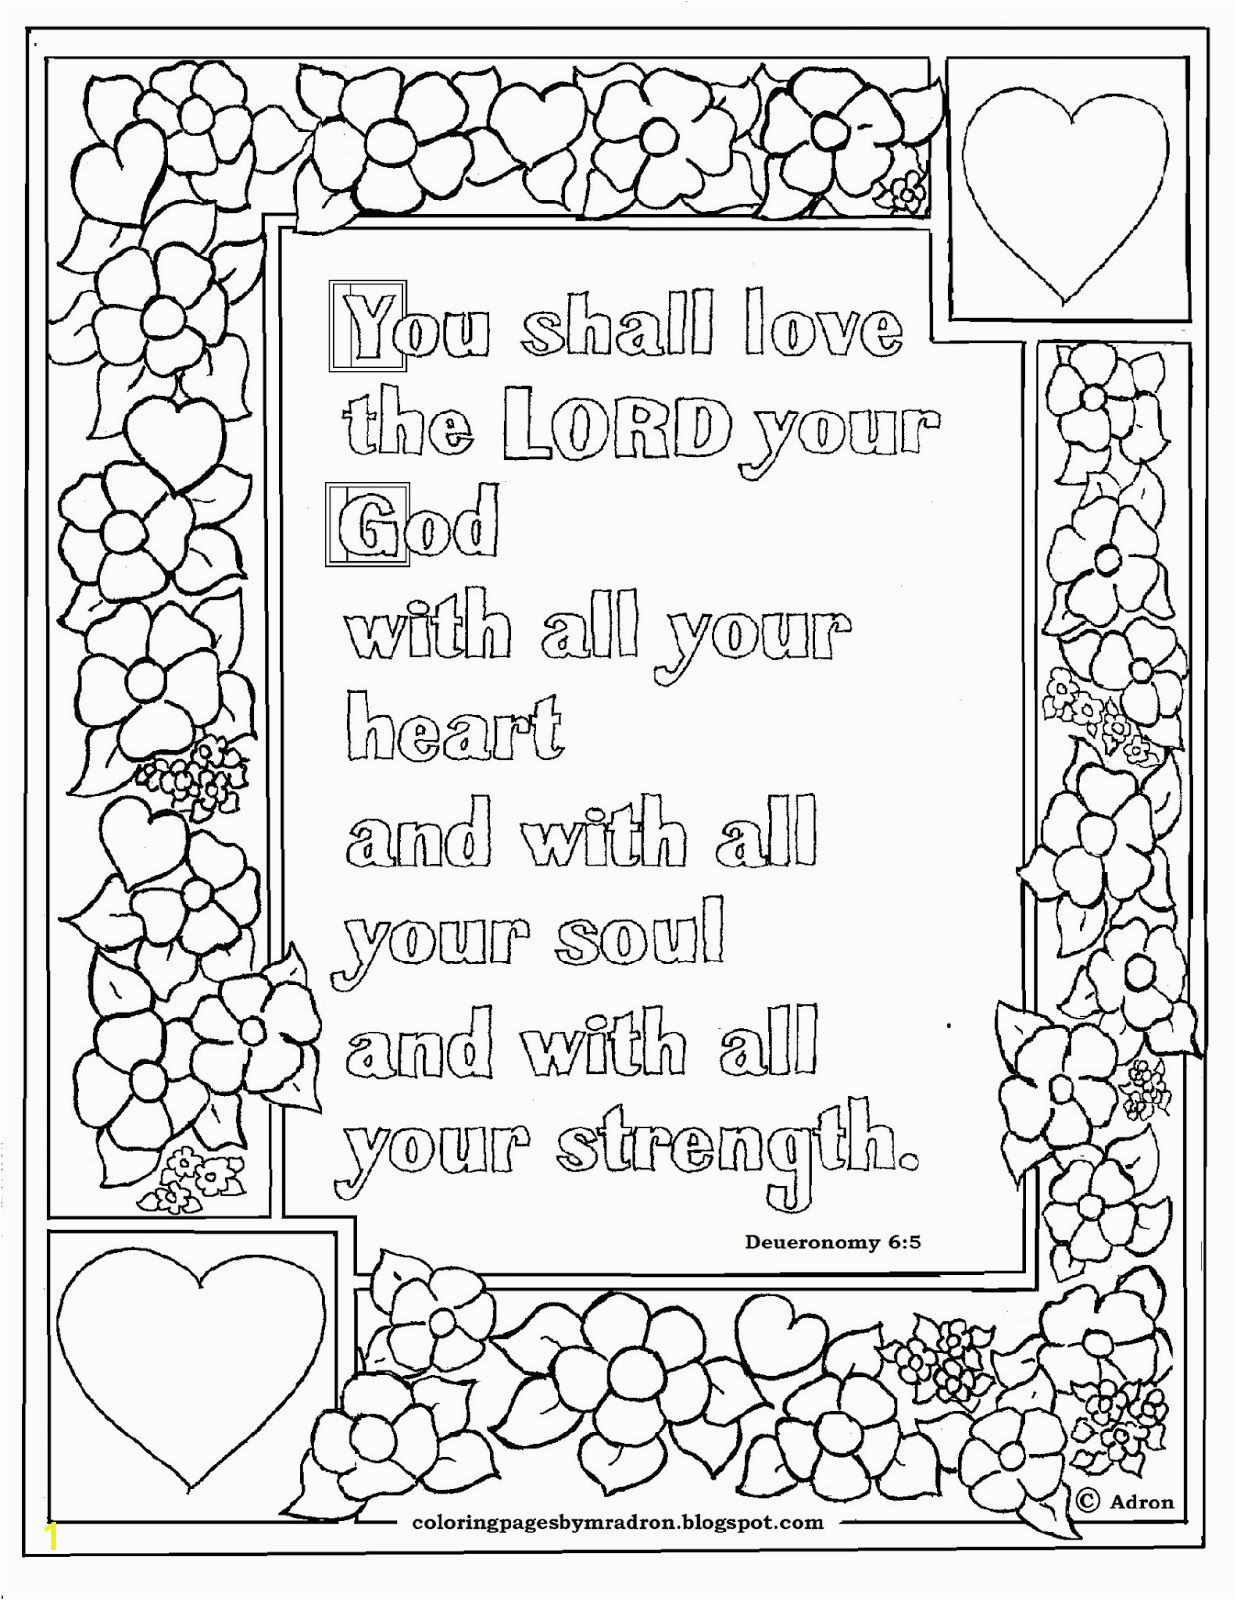 Free Printable Bible Coloring Pages with Verses Deuteronomy 6 5 Bible Verse to Print and Color This is A Free